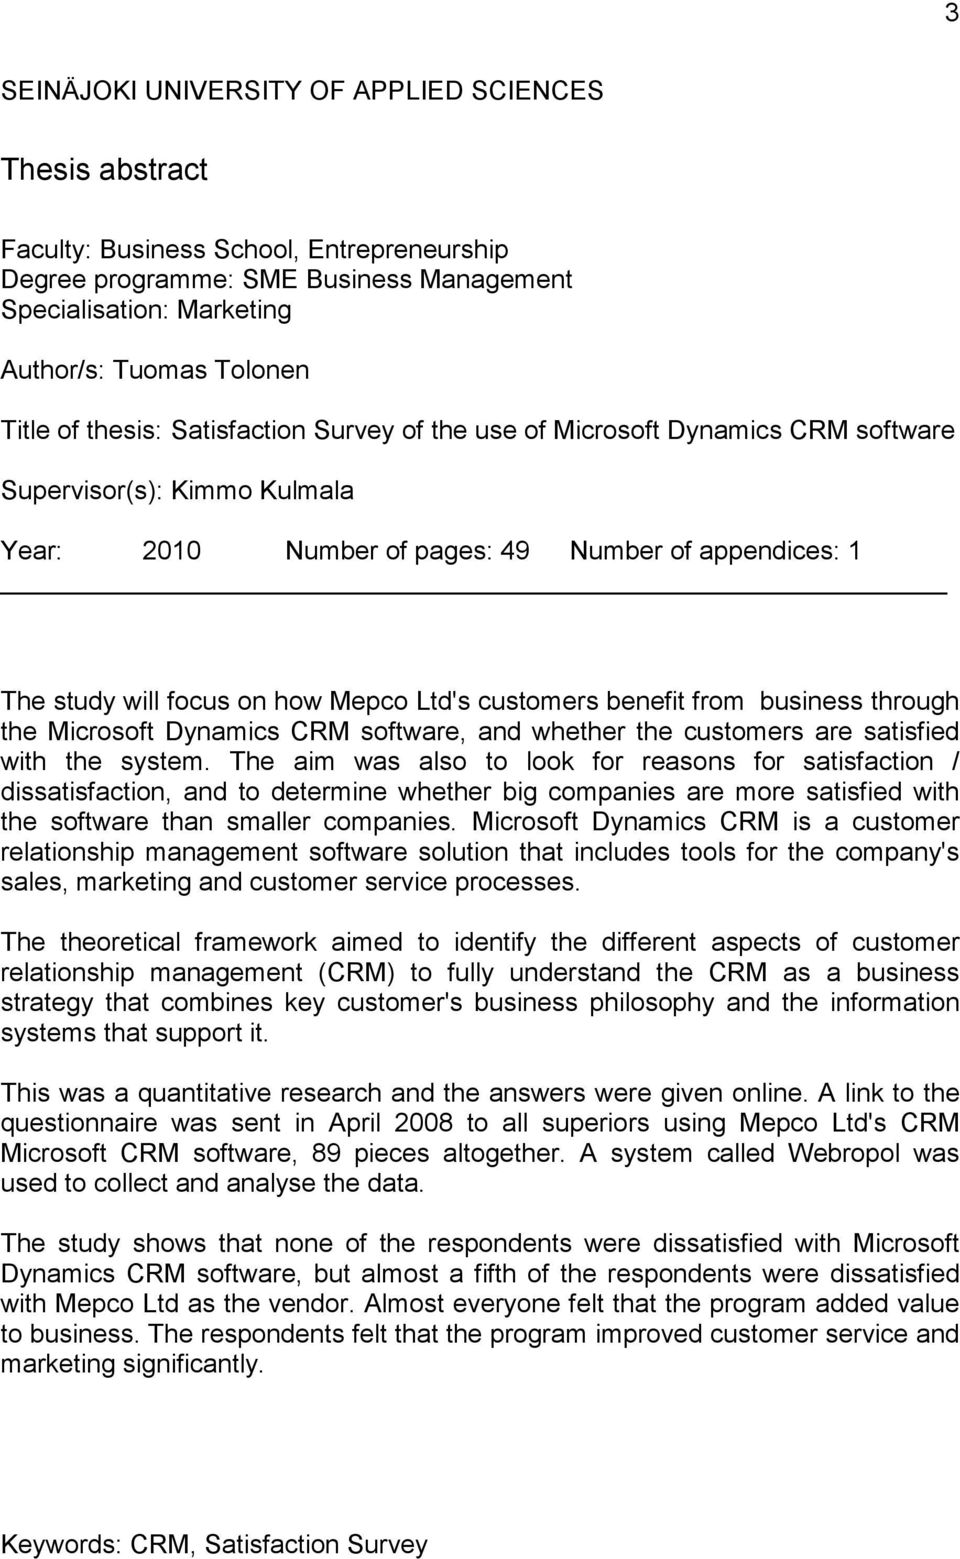 Mepco Ltd's customers benefit from business through the Microsoft Dynamics CRM software, and whether the customers are satisfied with the system.